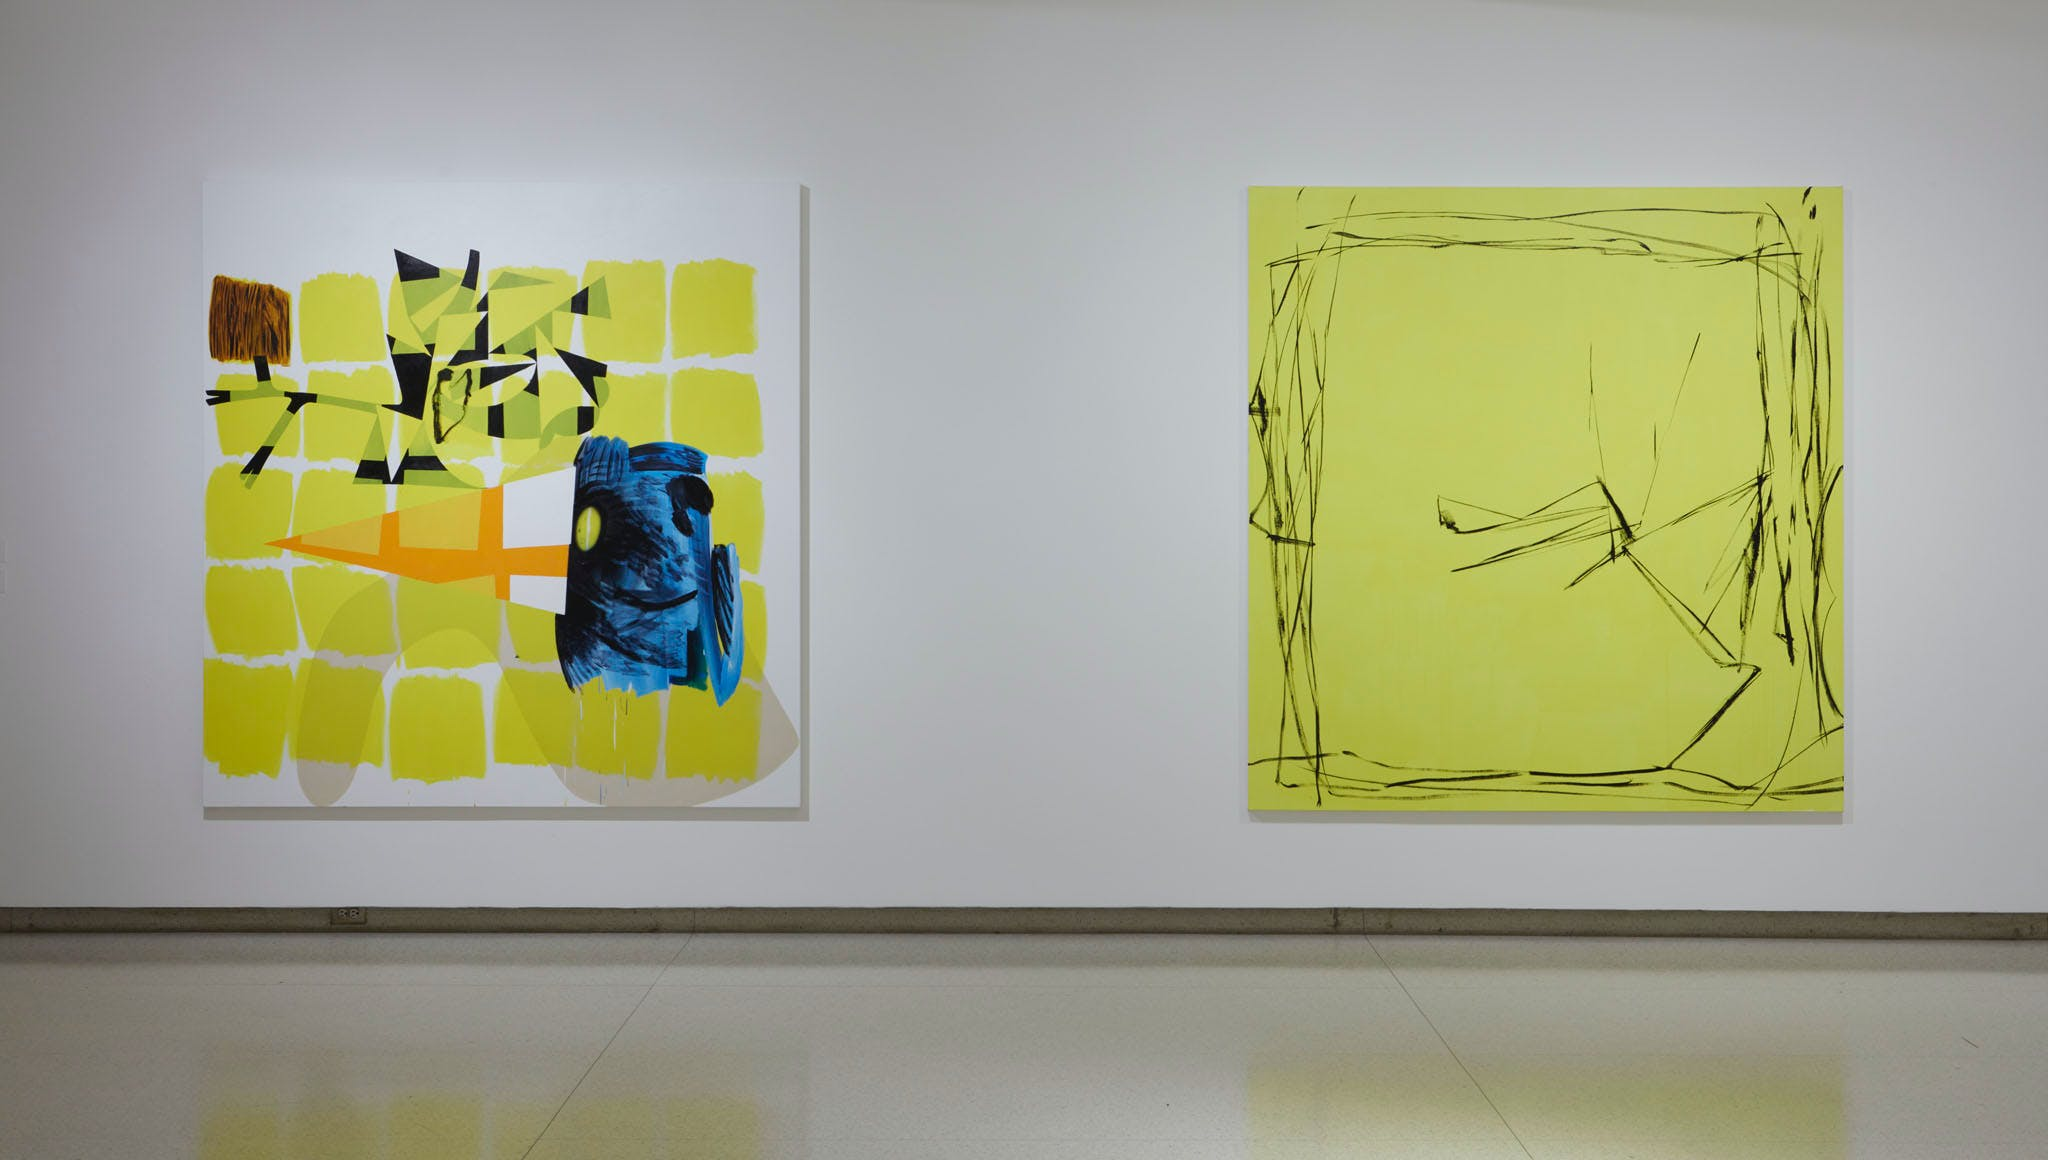 View of the exhibition Less Than One, 2016; (left to right): Charline von Heyl, Children's Encyclopedia, 2014; Charline von Heyl, Bois-Tu De La Bier?, 2012 (Photo: Gene Pittman, ©Walker Art Center)